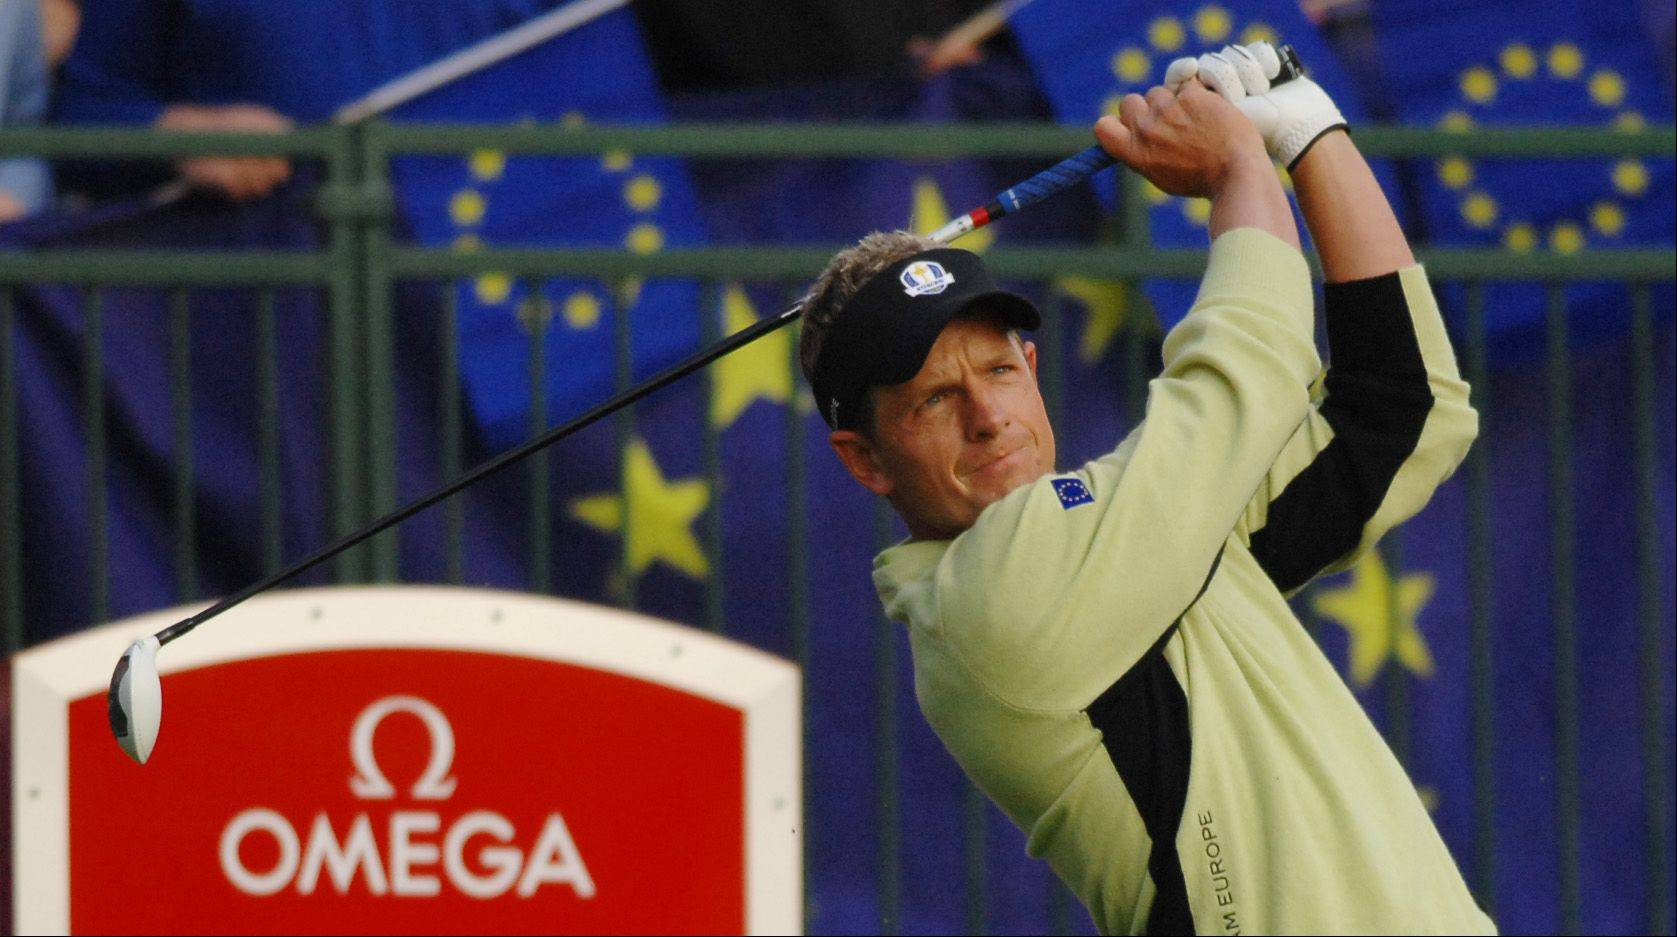 Team Europe's Ian Poulter started strong and finished strong in his morning match as he teamed with Justin Rose to defeat Steve Stricker and Tiger Woods.